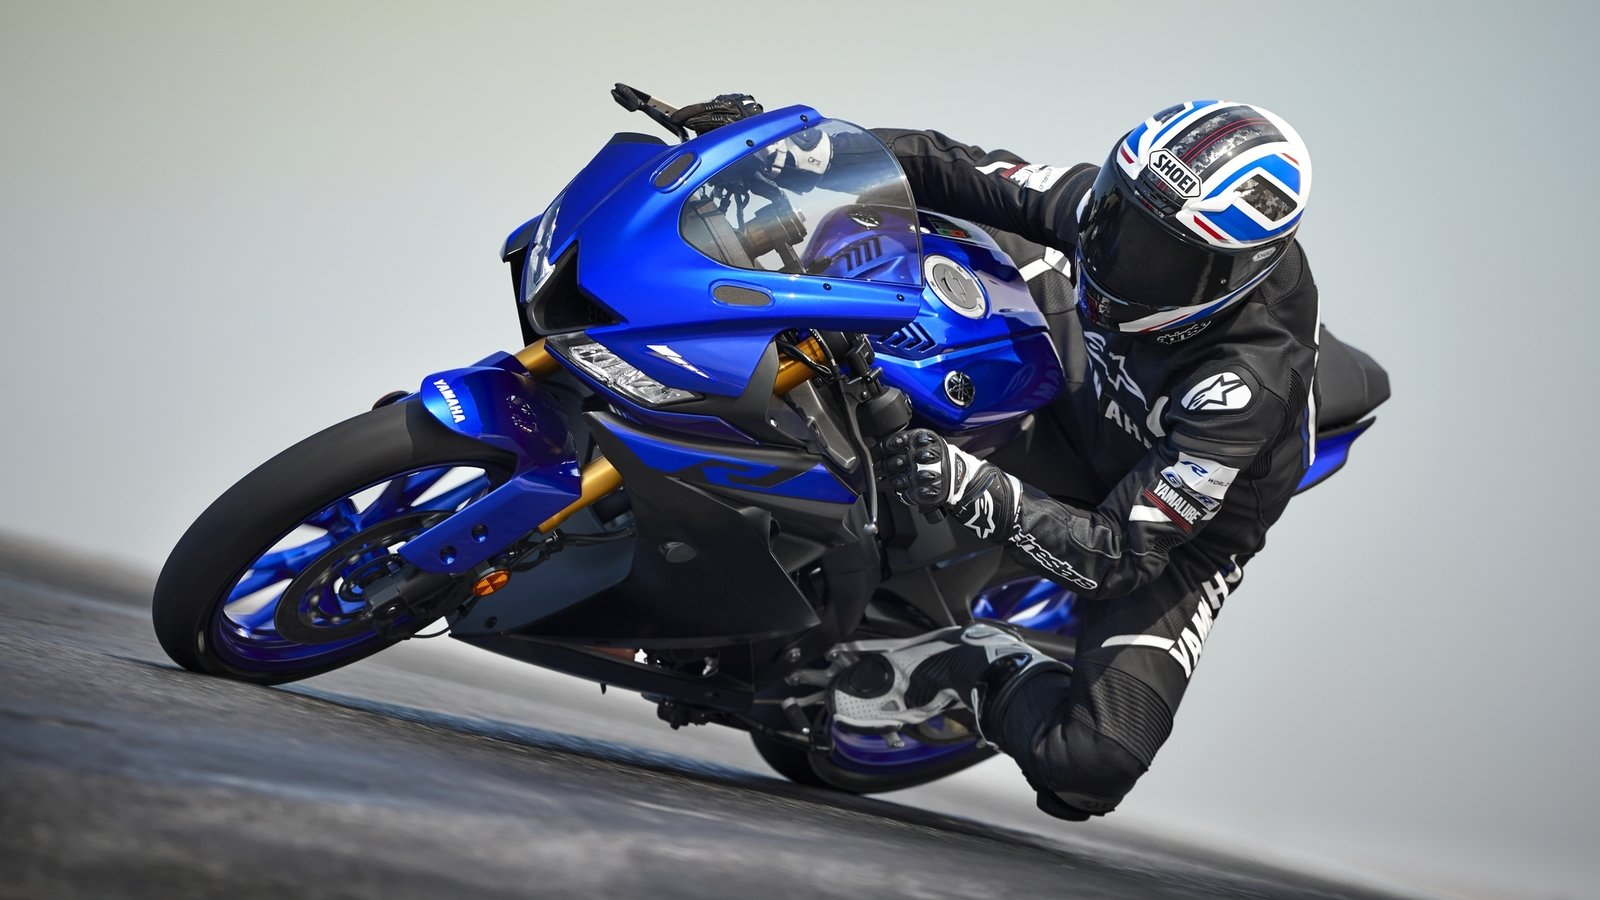 2019 Yamaha Yzf R125 Top Speed